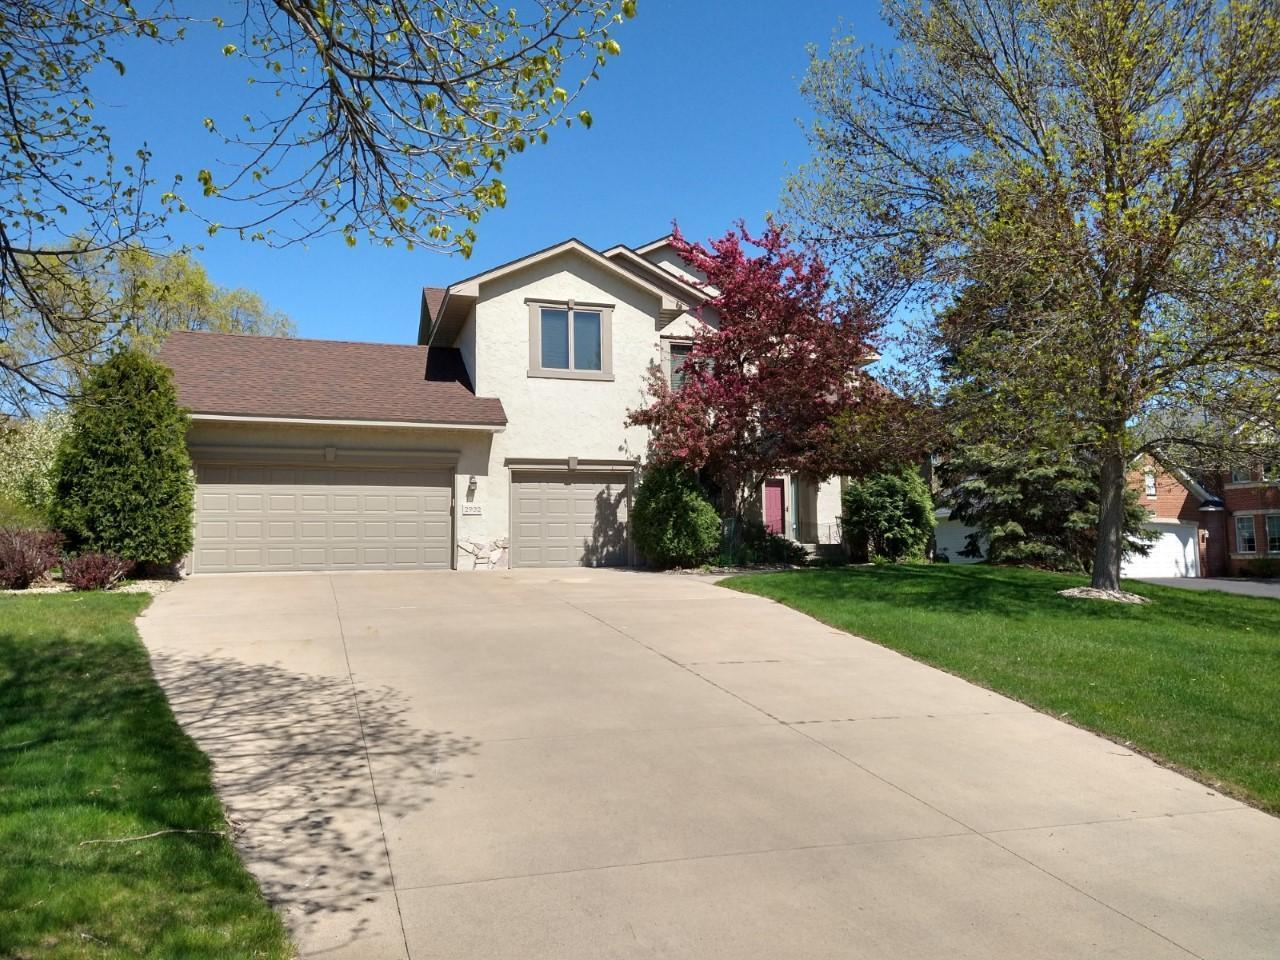 Photo of 2932 Hillsview W, Roseville, MN 55113